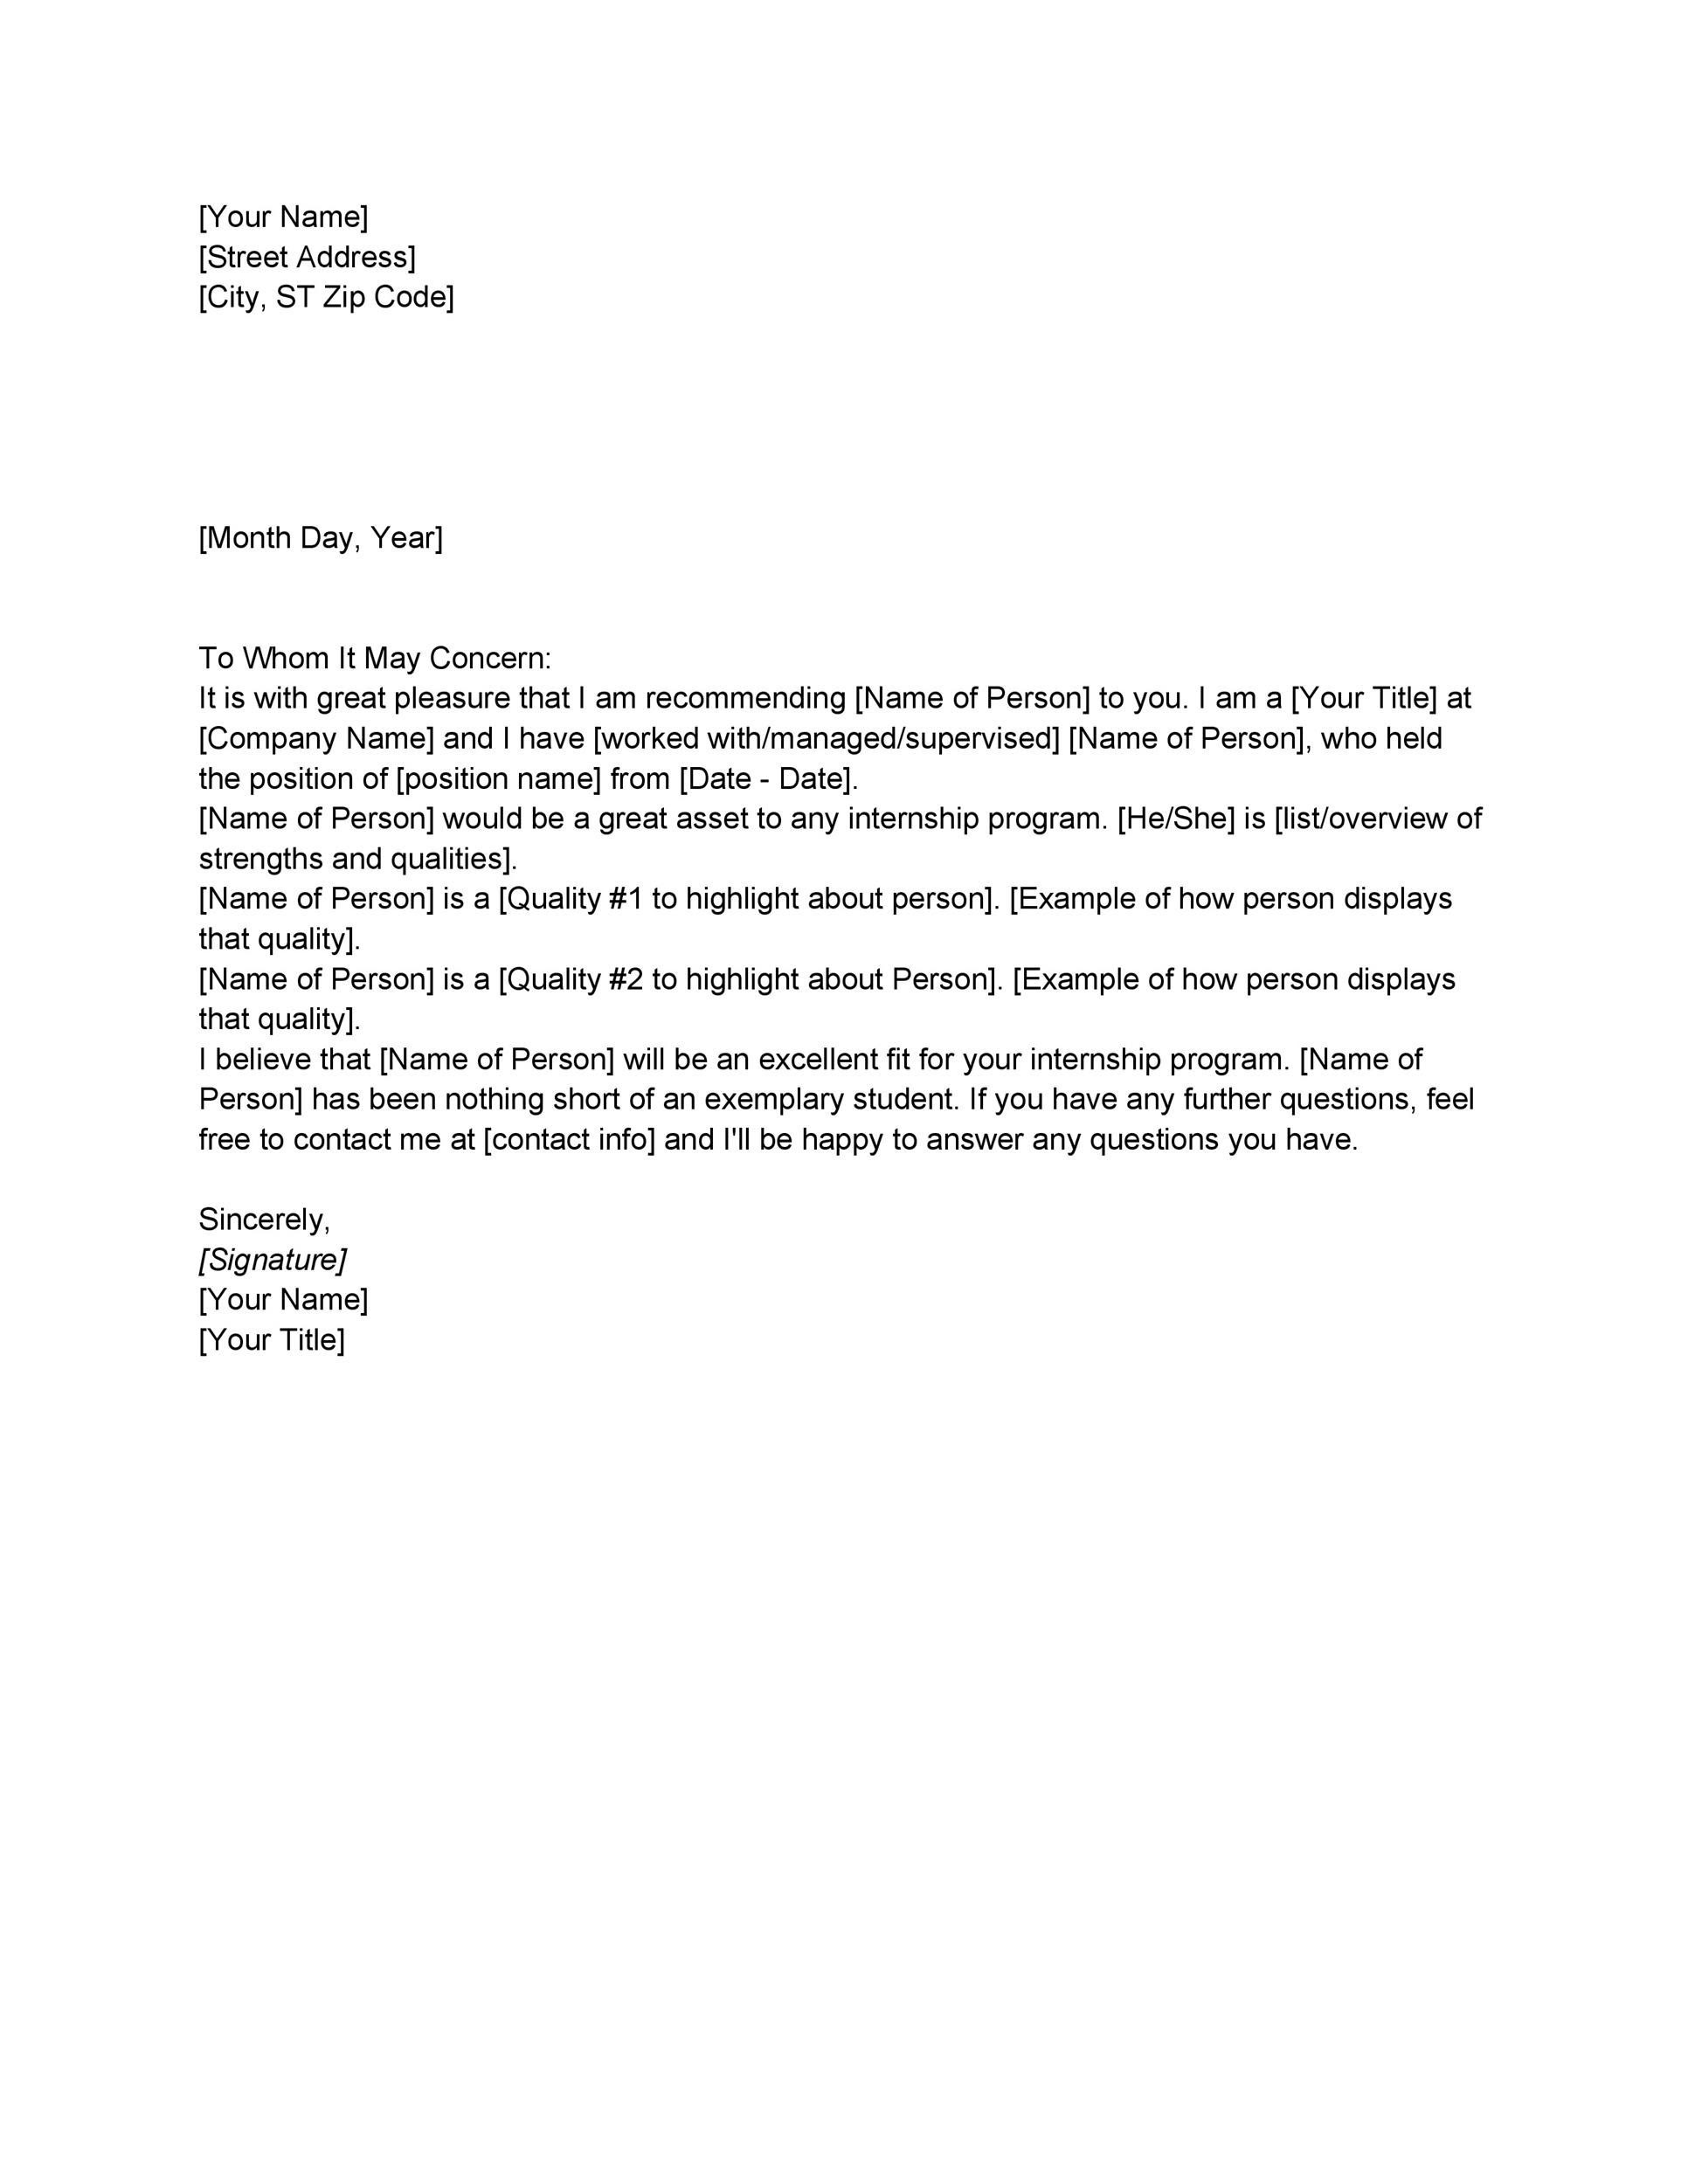 Letter Of Recommendation Examples Letter